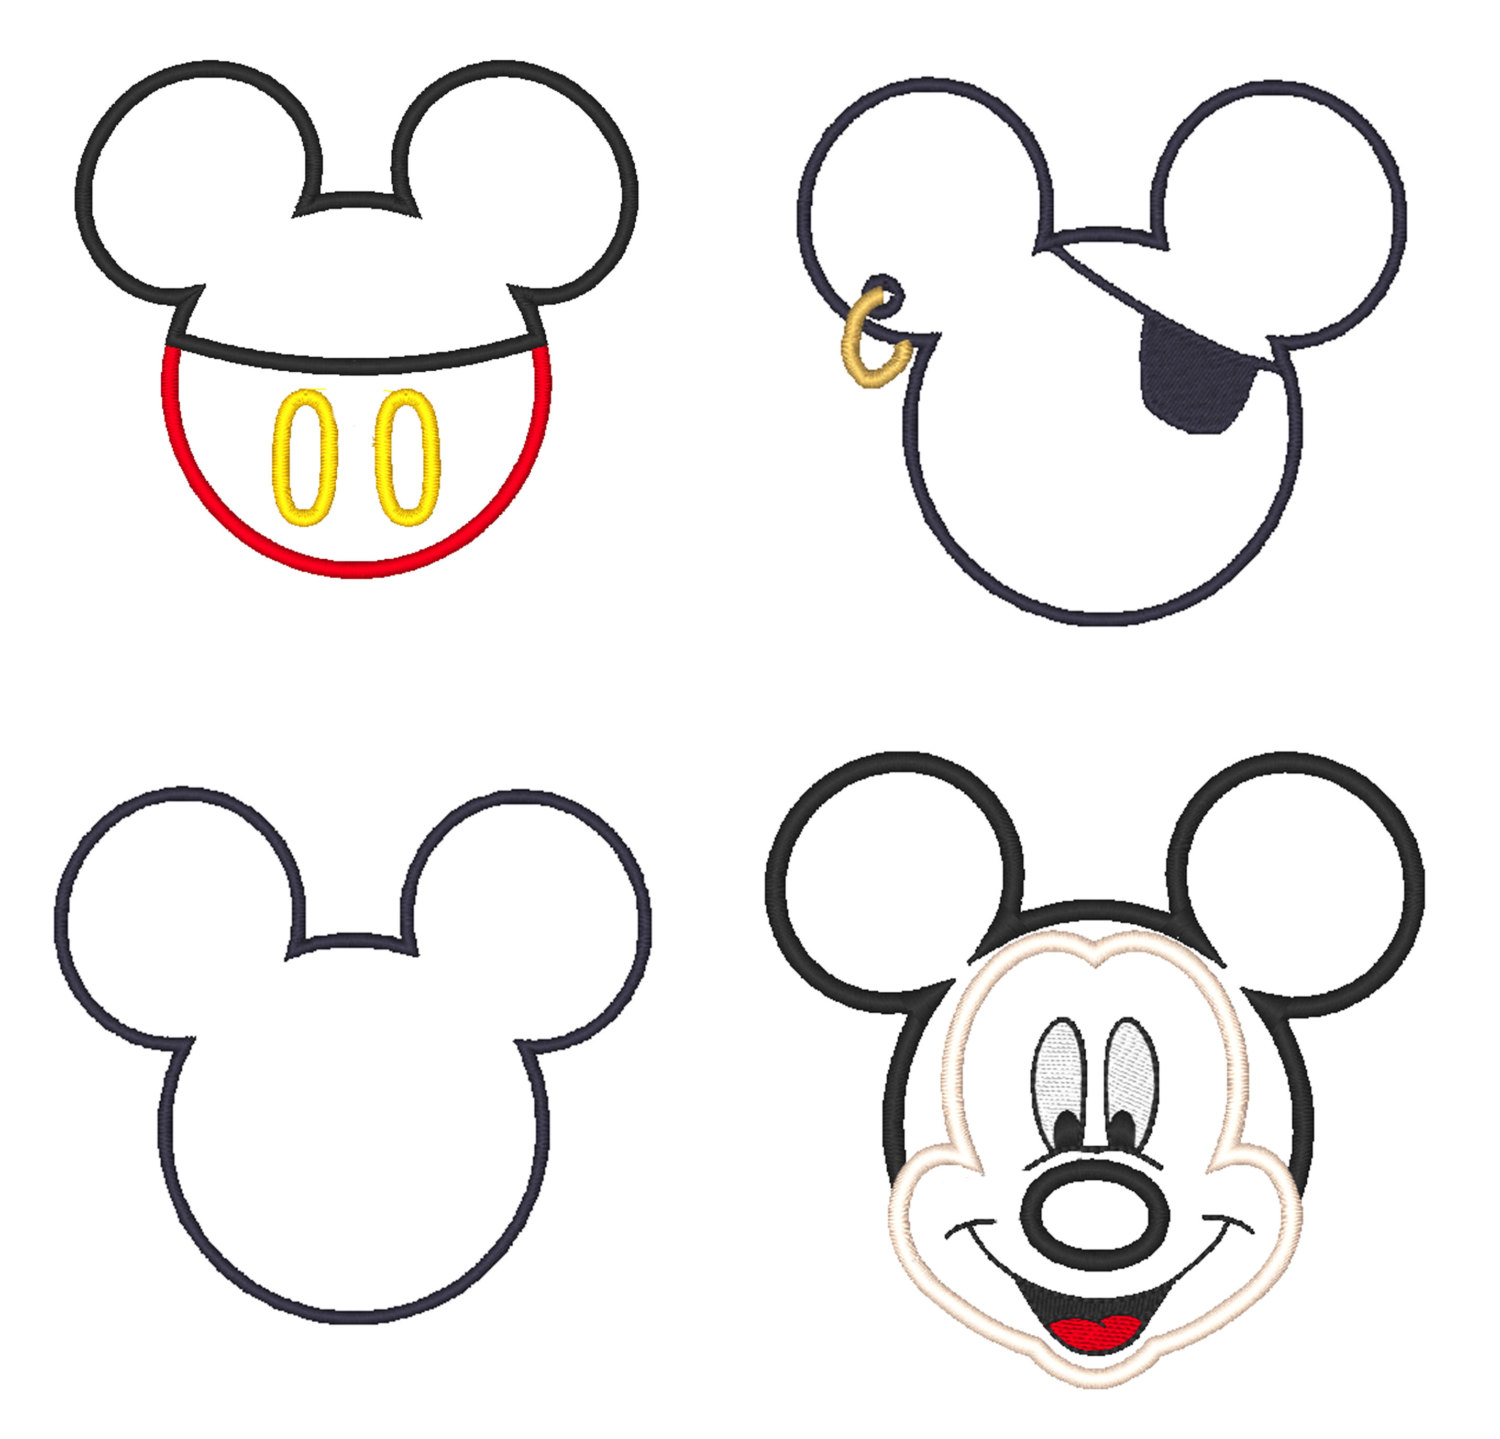 Free Outline Of Mickey Mouse, Download Free Clip Art, Free